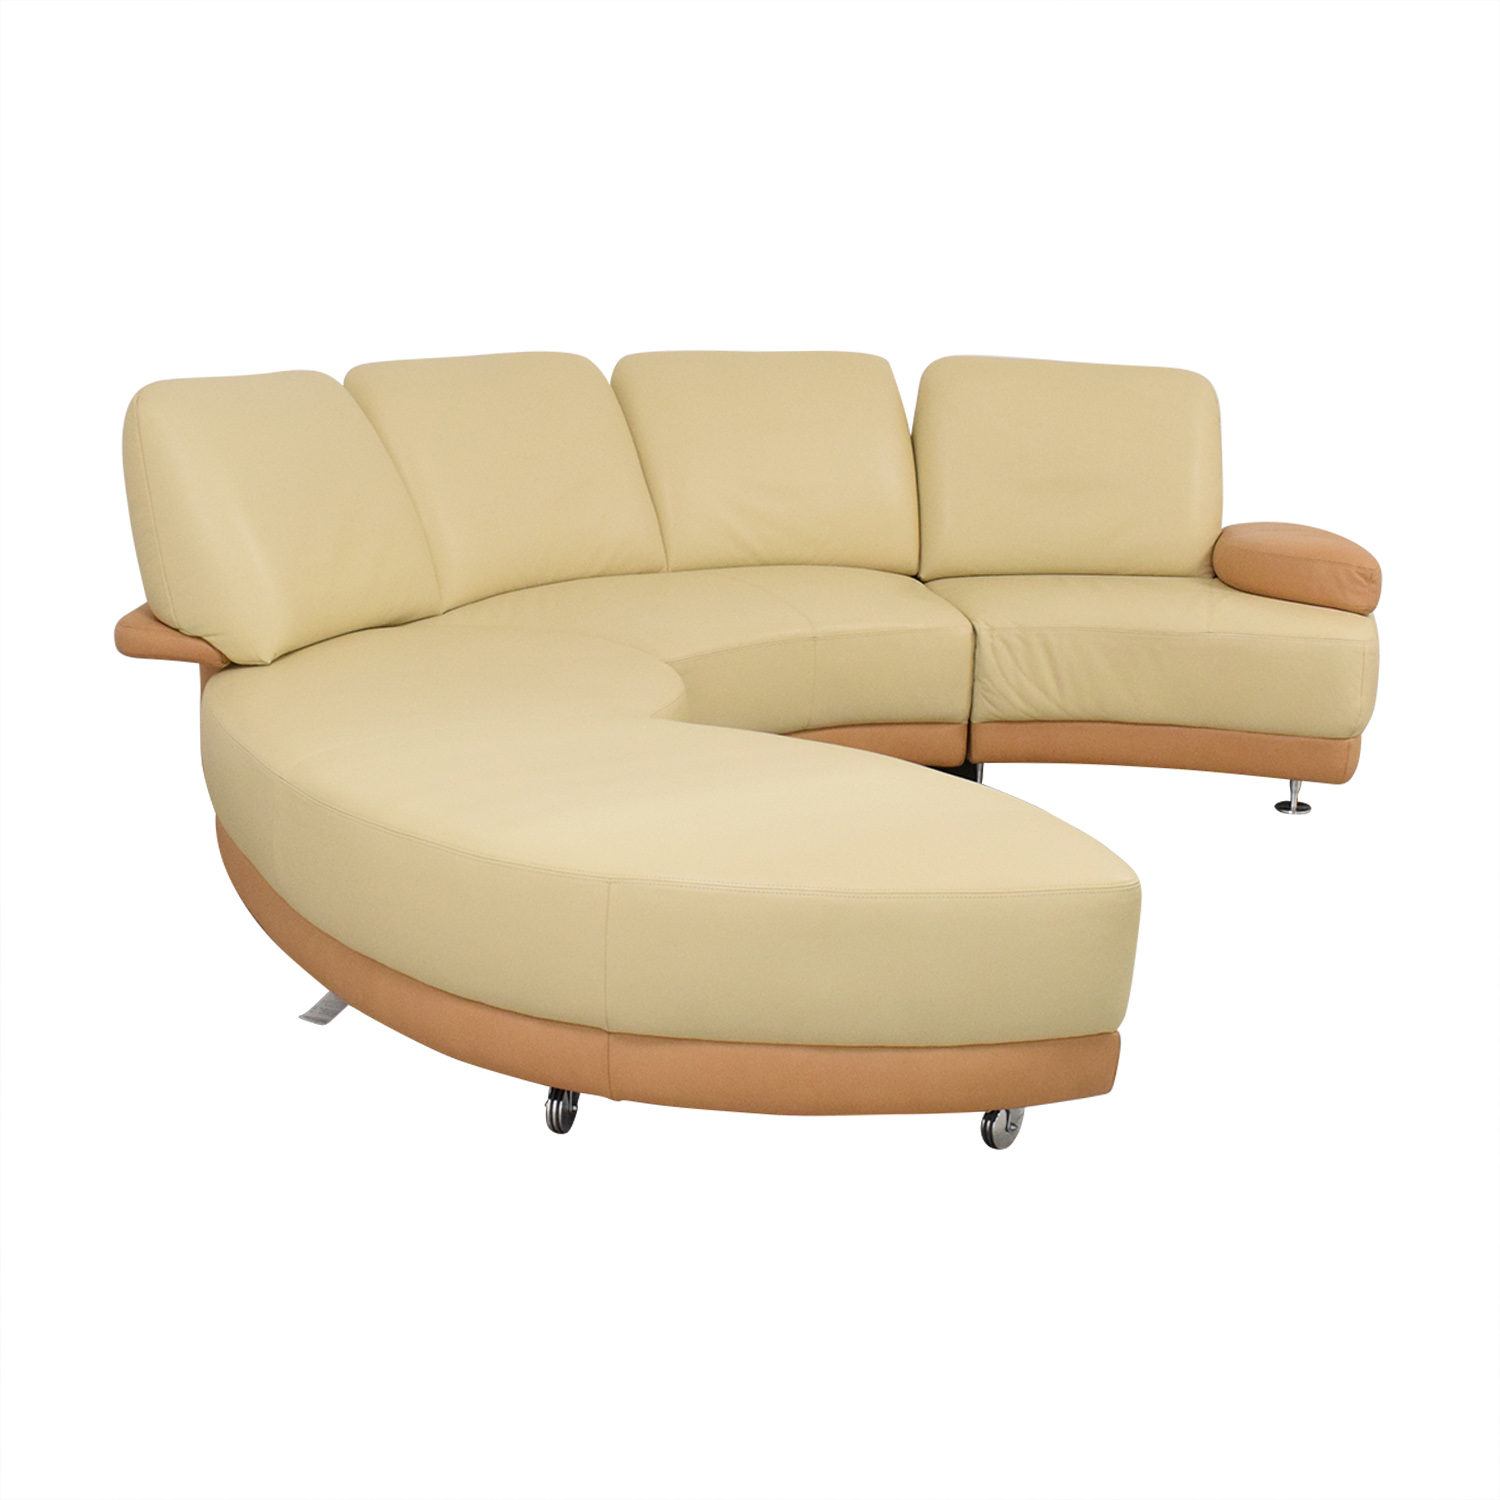 W. Schillig Crescent Shaped Sectional Sofa / Sectionals